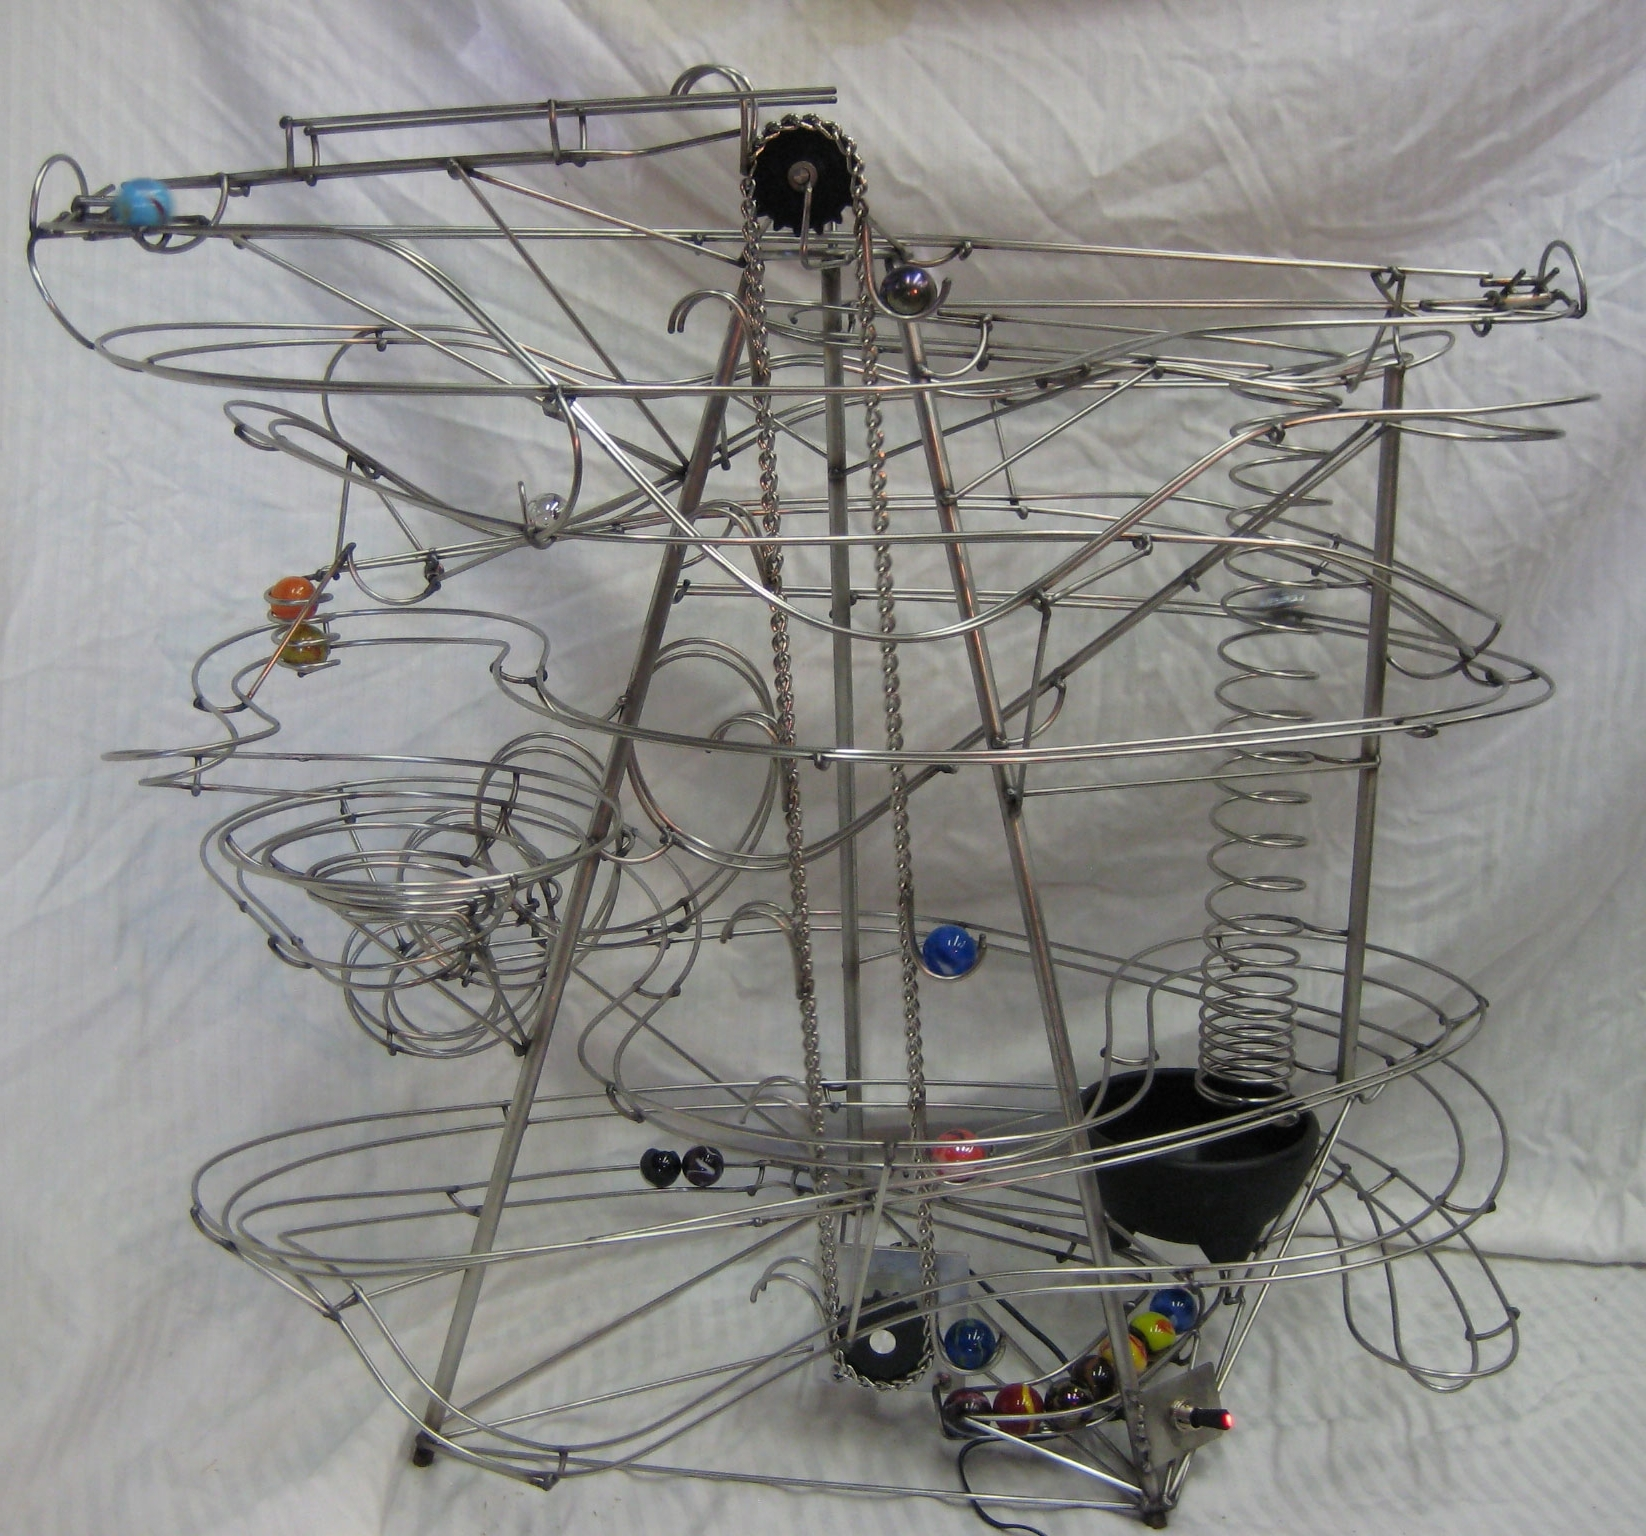 Rollingballsculpture – Captures The Intended For Kinetic Wall Art (View 8 of 15)